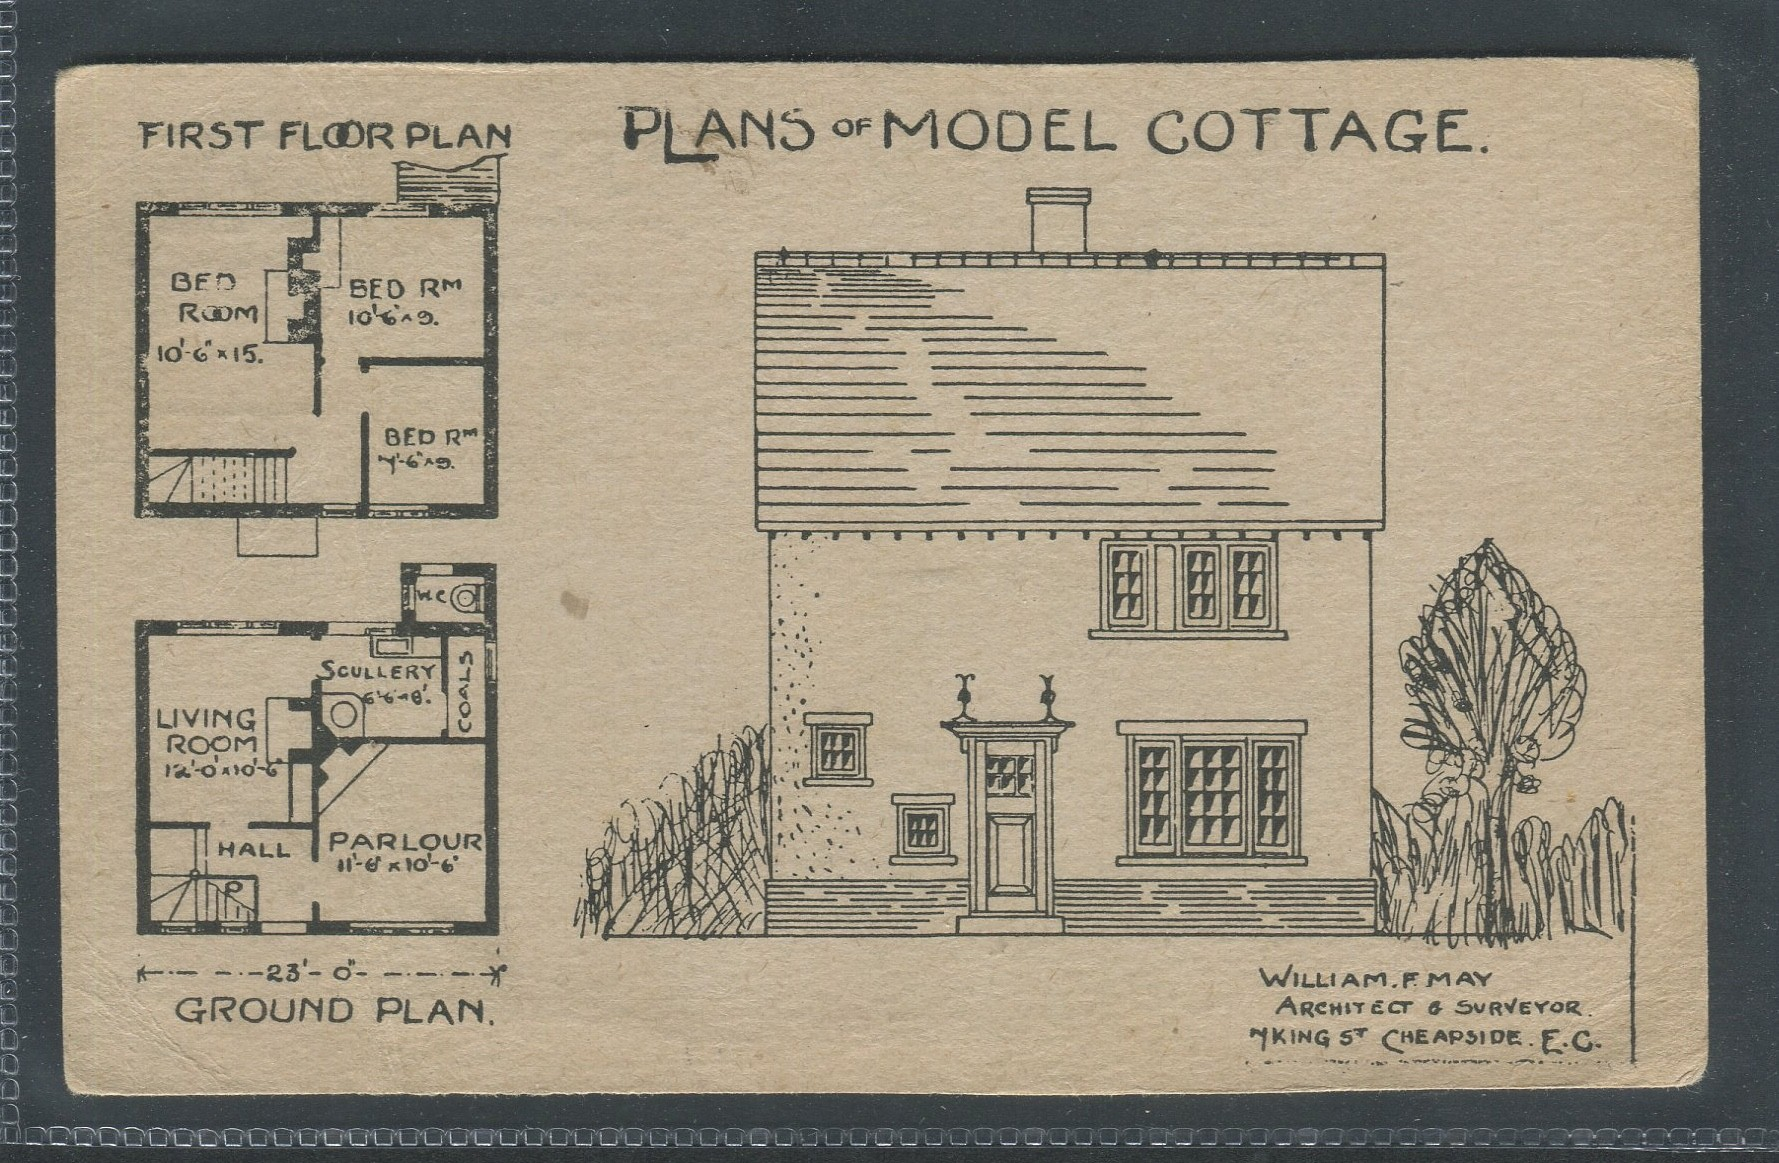 Lot 88 - THREE VINTAGE FLOR MAP ARCHITECTURAL DRAWINGS POSTCARDS